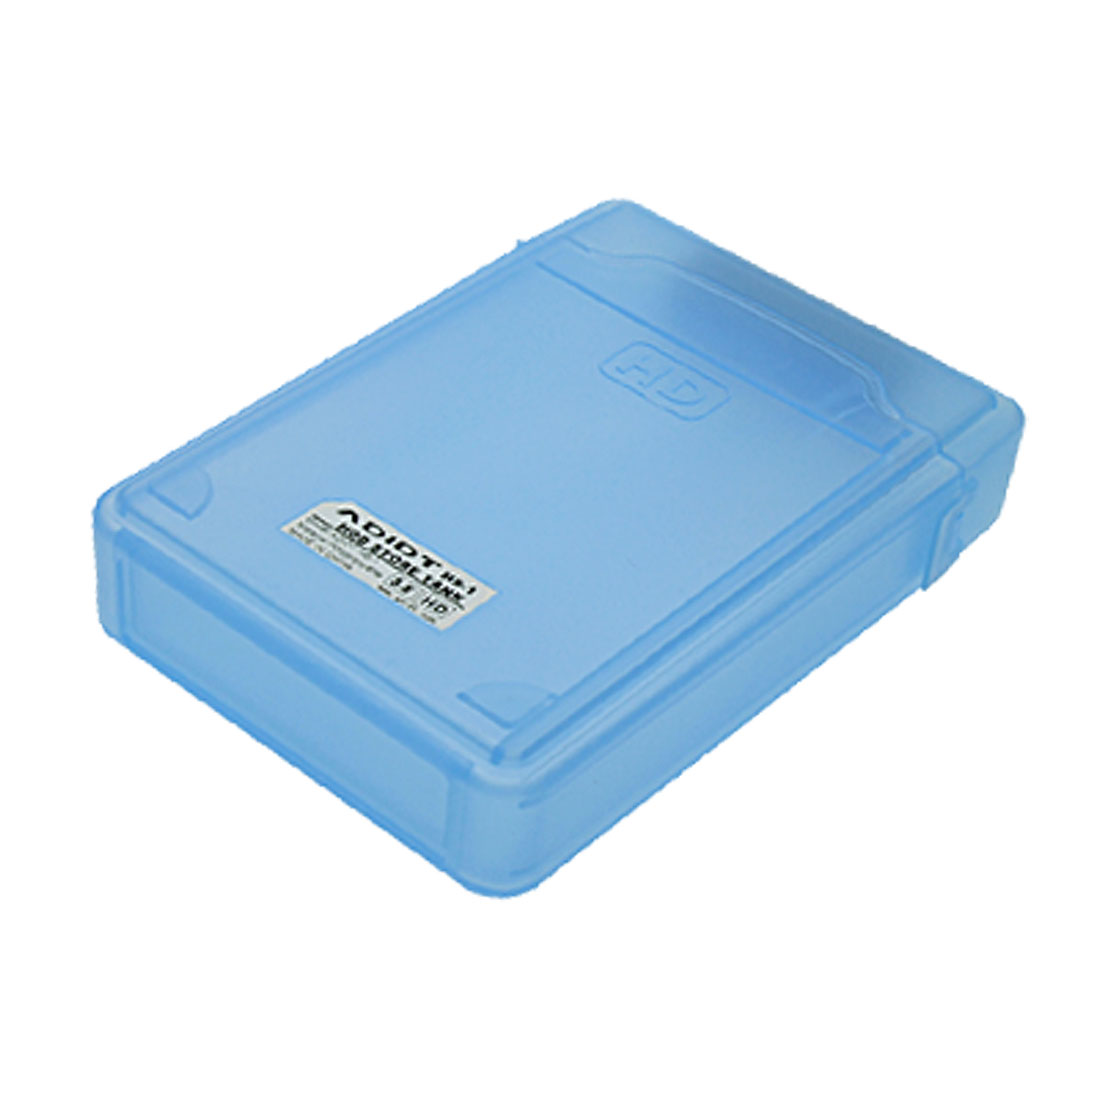 "Blue Plastic 3.5"" USB 2.0 Sata Hard Disk Drive HDD Enclosure Case IDE Pata"